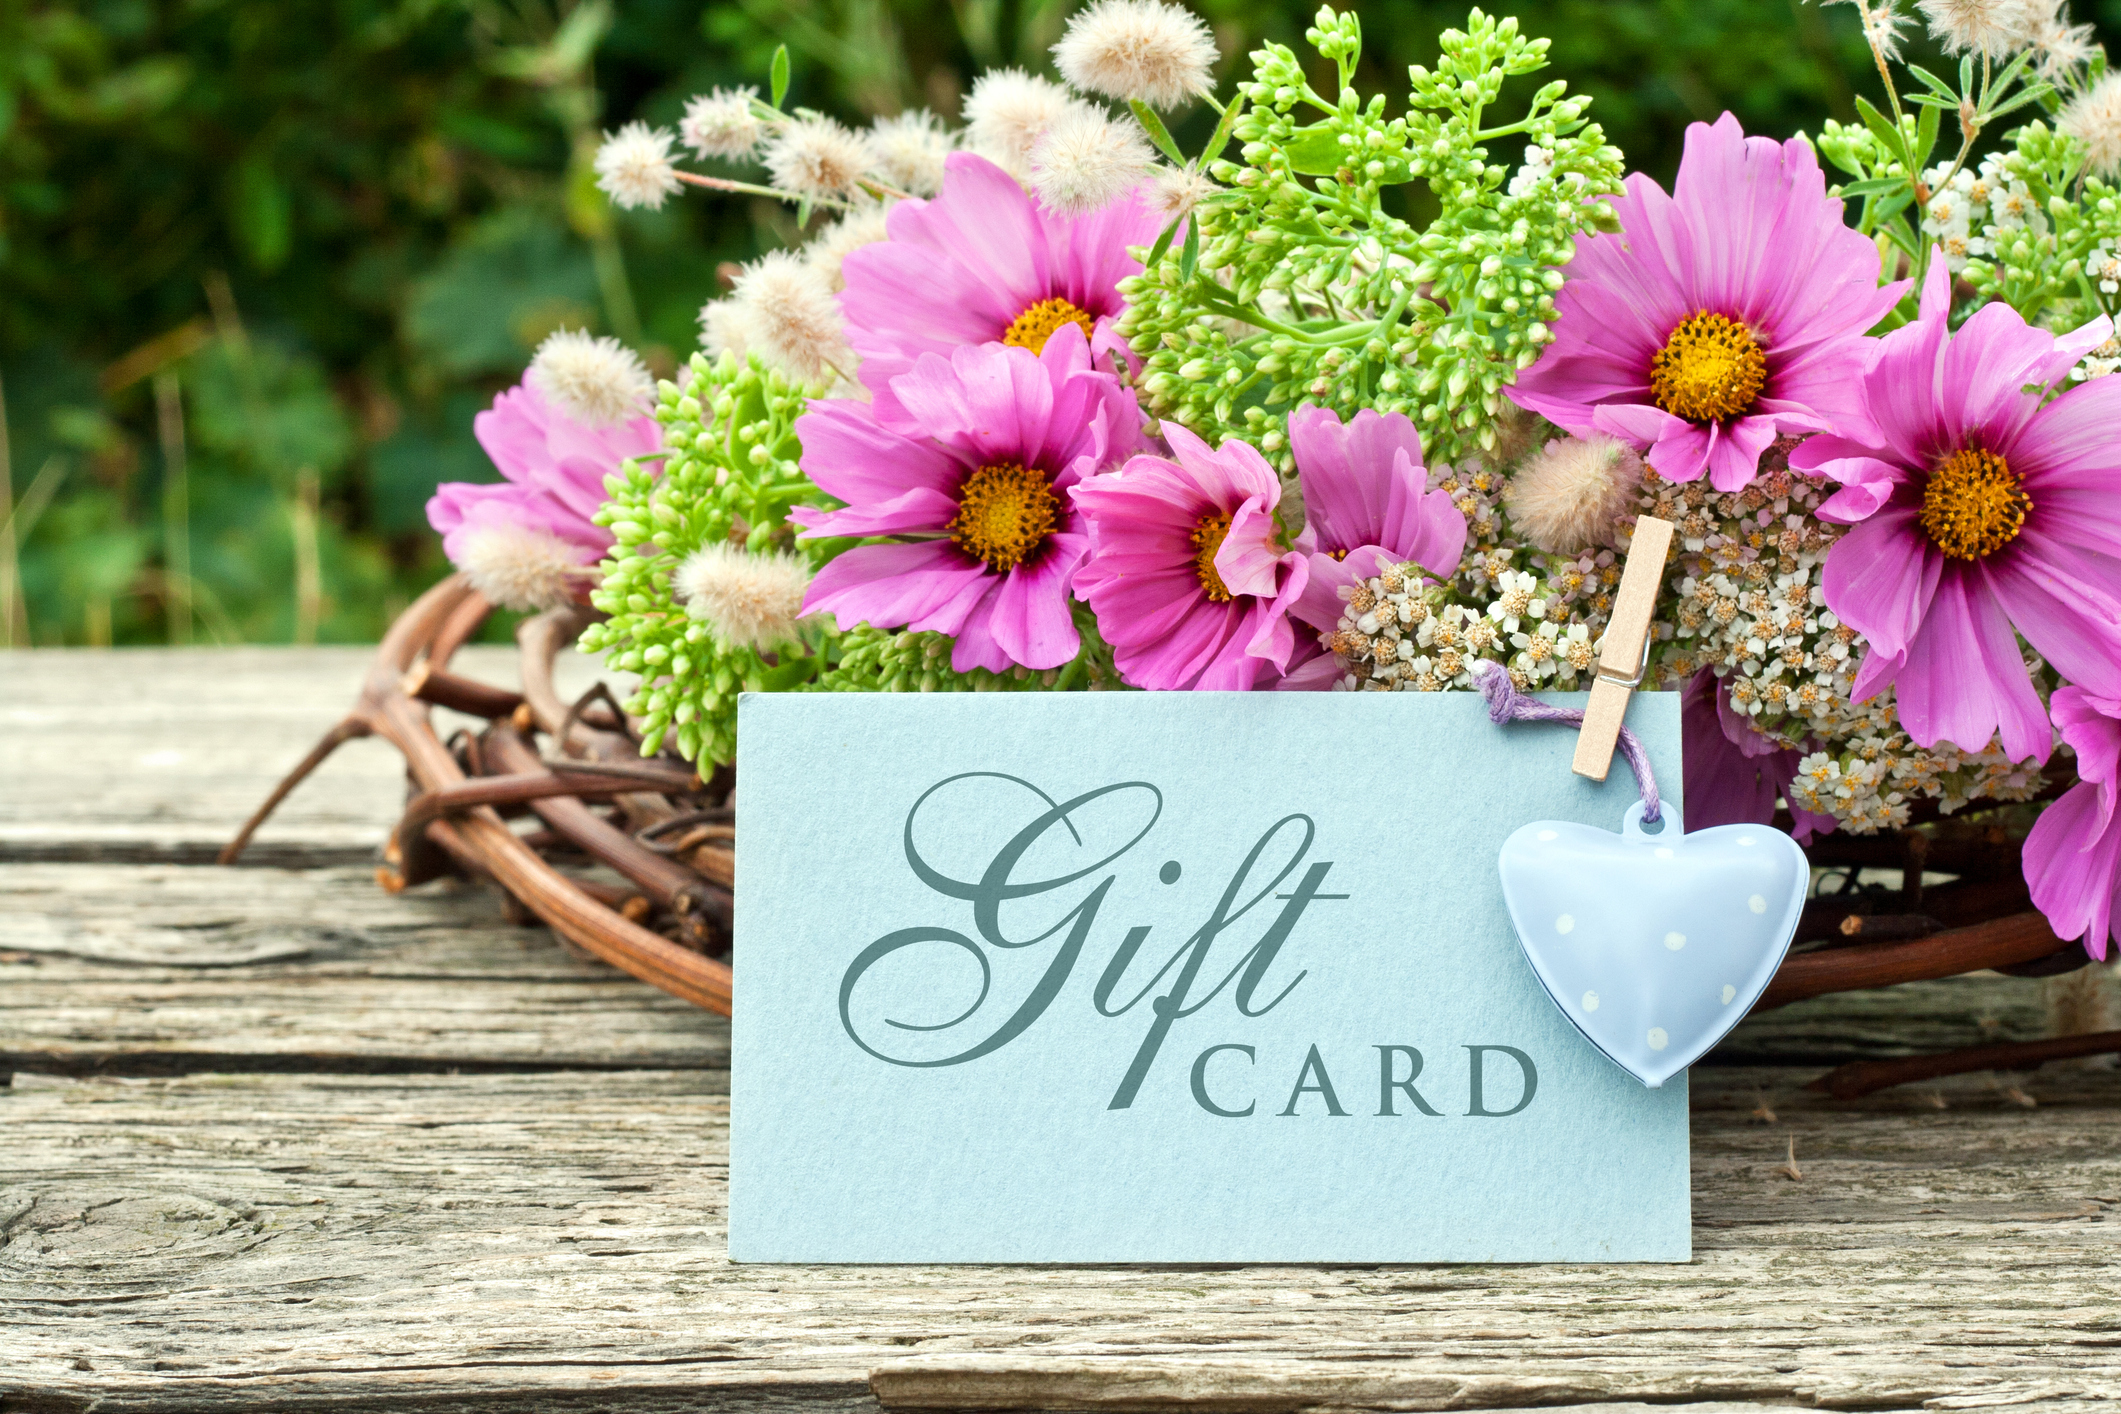 give the gift of life simplified - The perfect gift for any stage of life!Holidays + Birthdays HousewarmingRenovation Wedding Shower Baby ShowerCollege Student